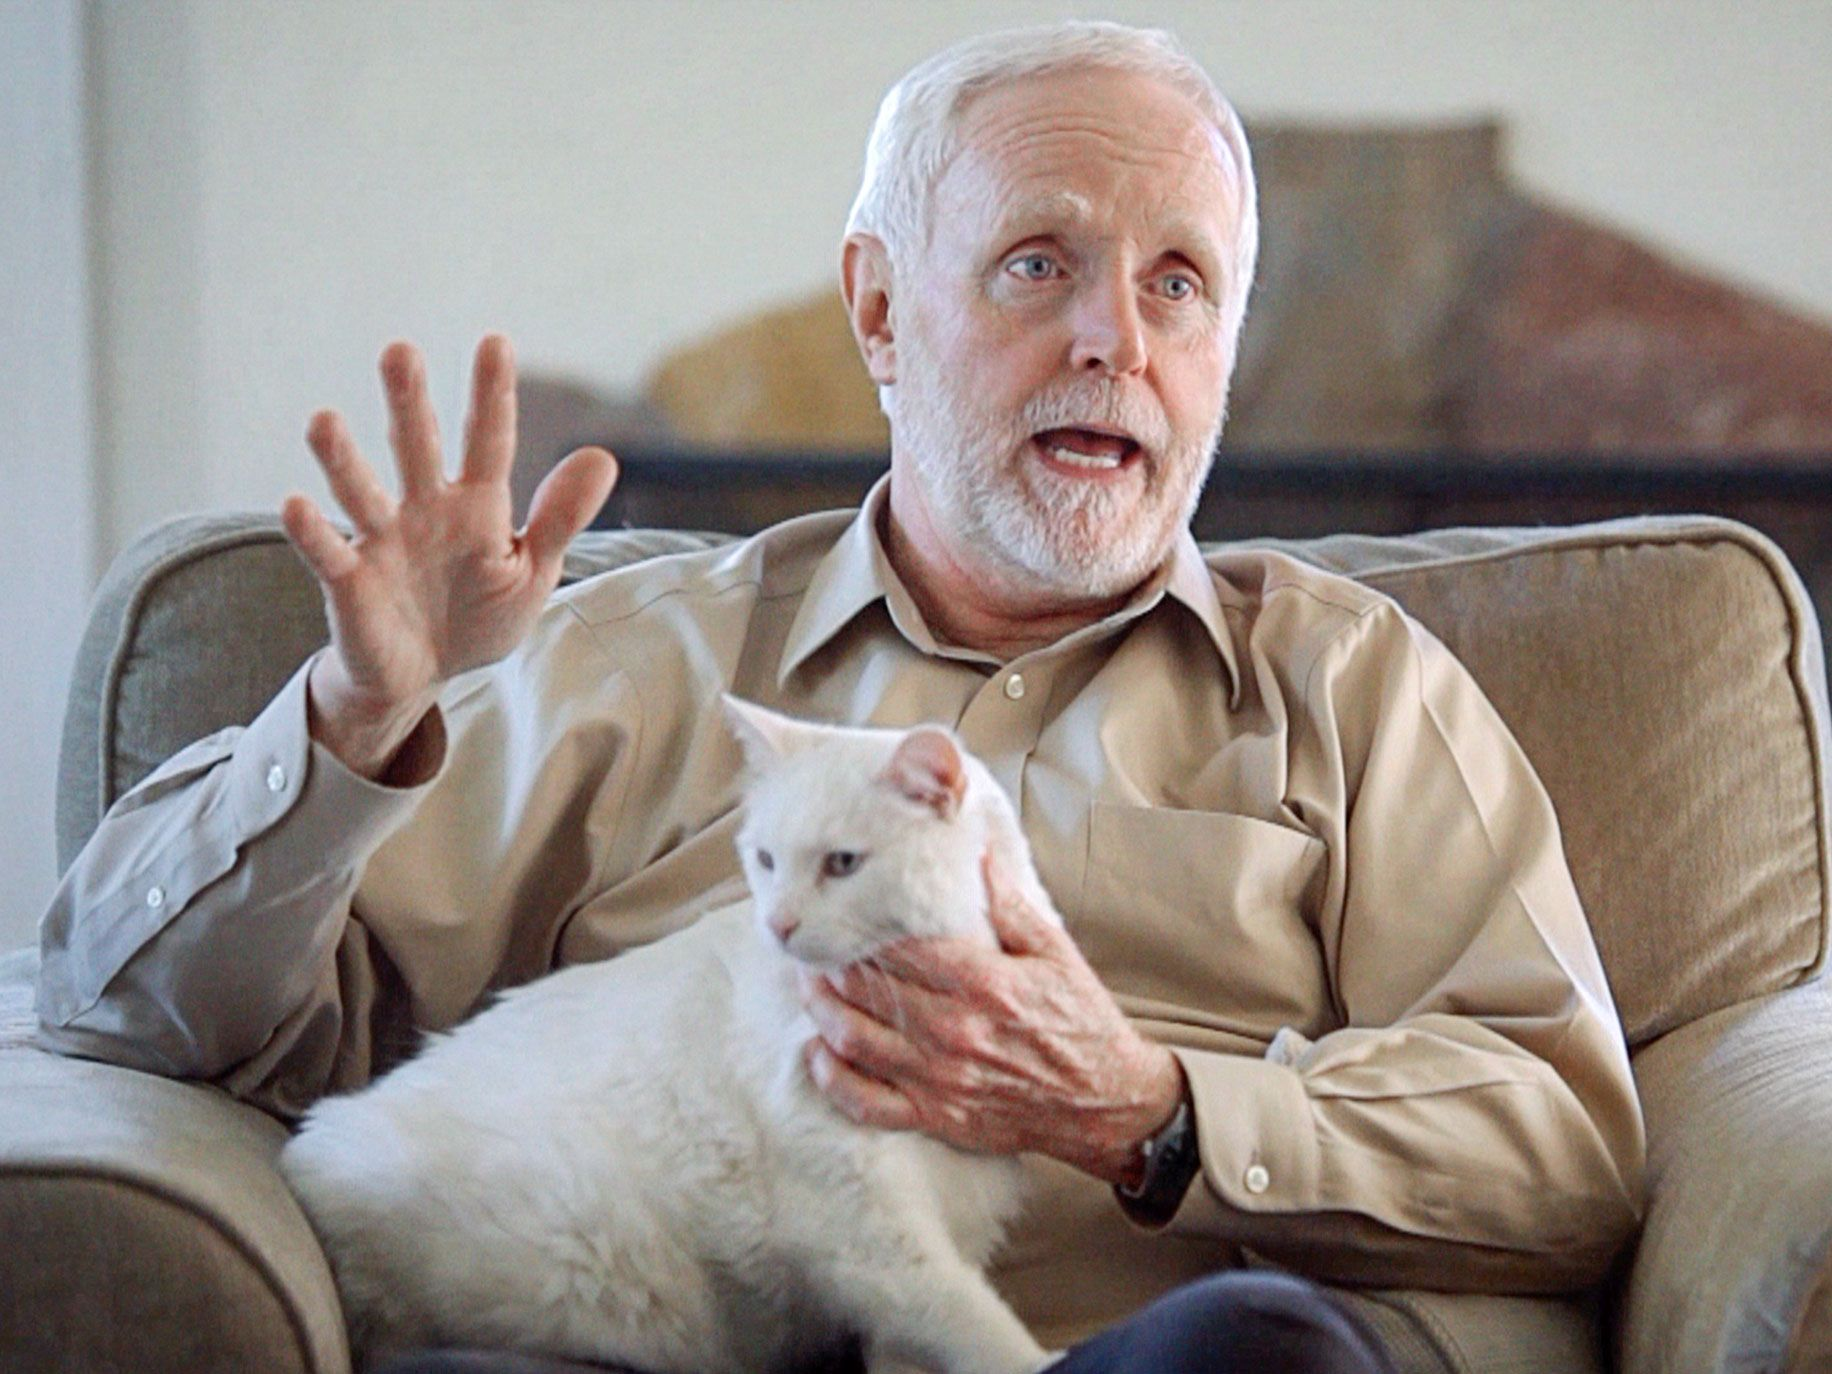 J. R. Yeager helped trap and euthanize more than 300 cats after he became disillusioned with trap-neuter-return efforts. He lives in Oakland with his street-rescued cat, Penny.